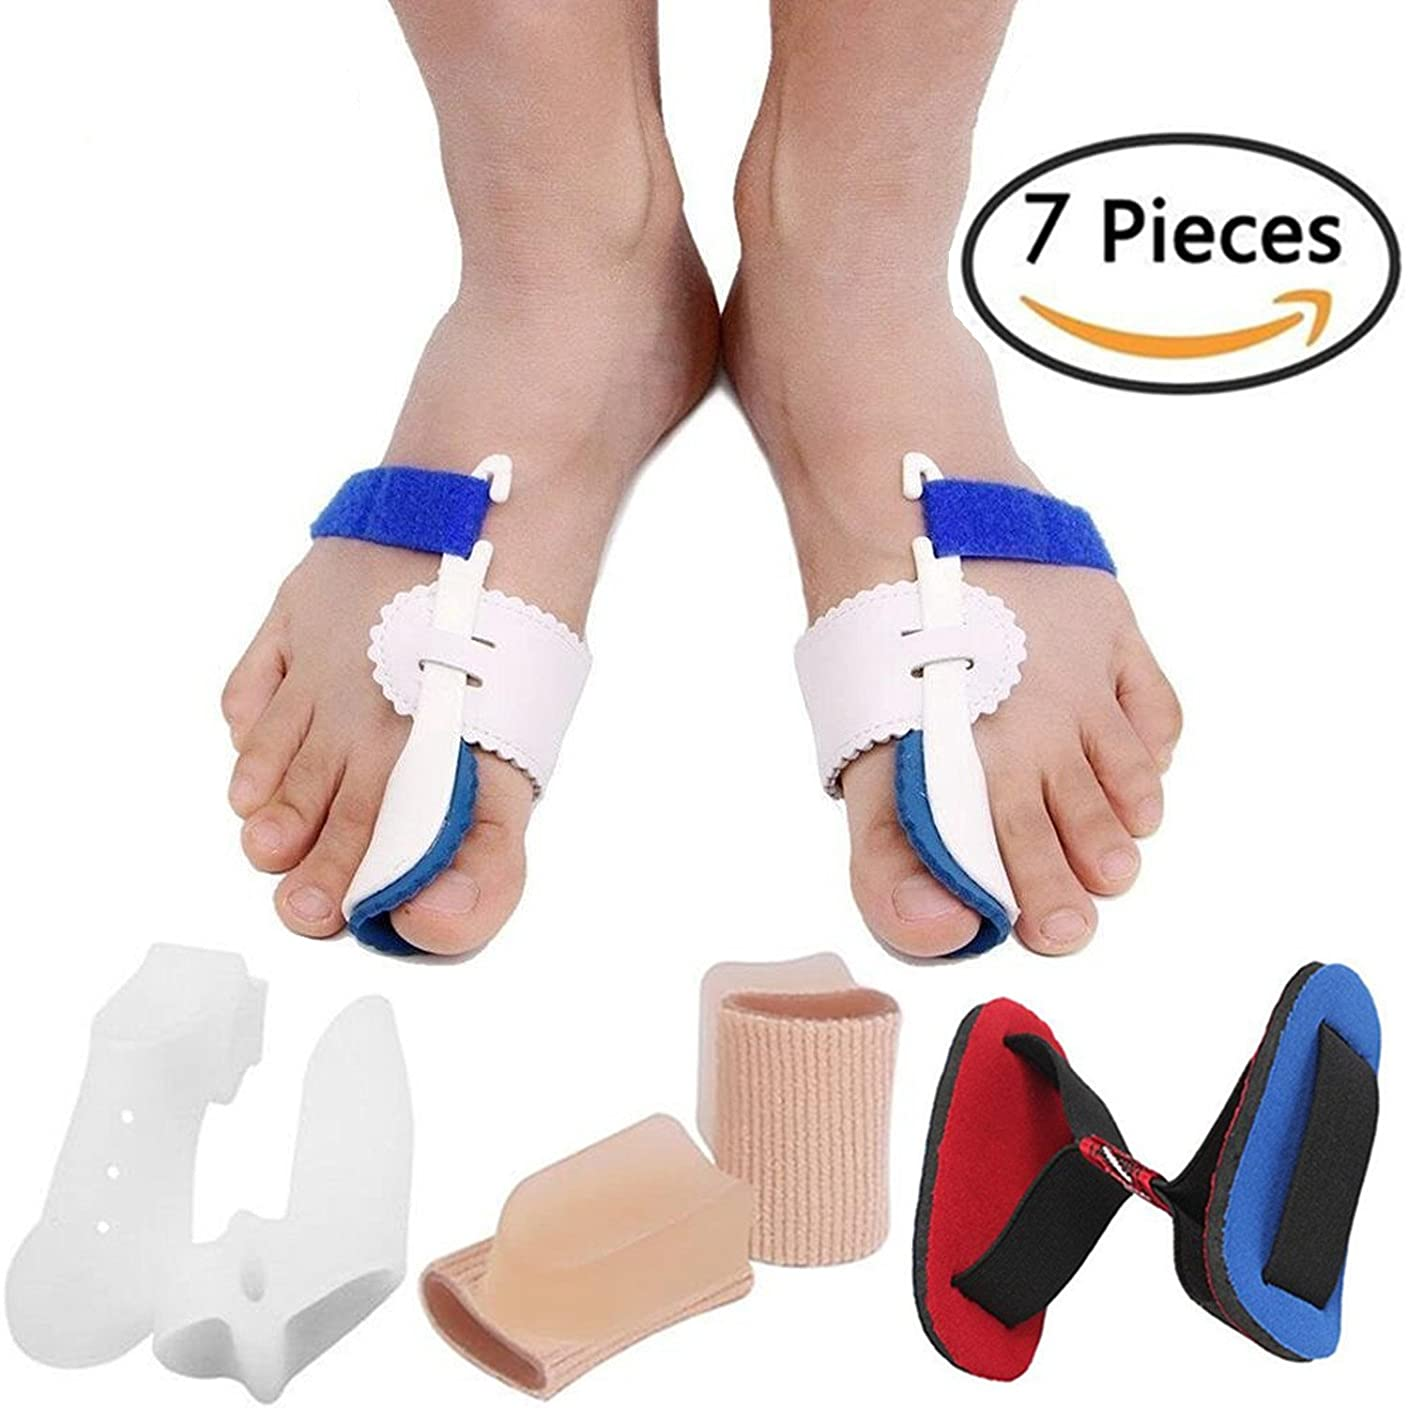 鉛スロベニア検出するBunion Corrector Bunion Relief Protector Sleeves Kit, Big Toe Corrector Straightener Separator Treat Pain in Hallux Valgus, Big Toe Joint, Hammer Toe, Splint Aid Surgery Treatment